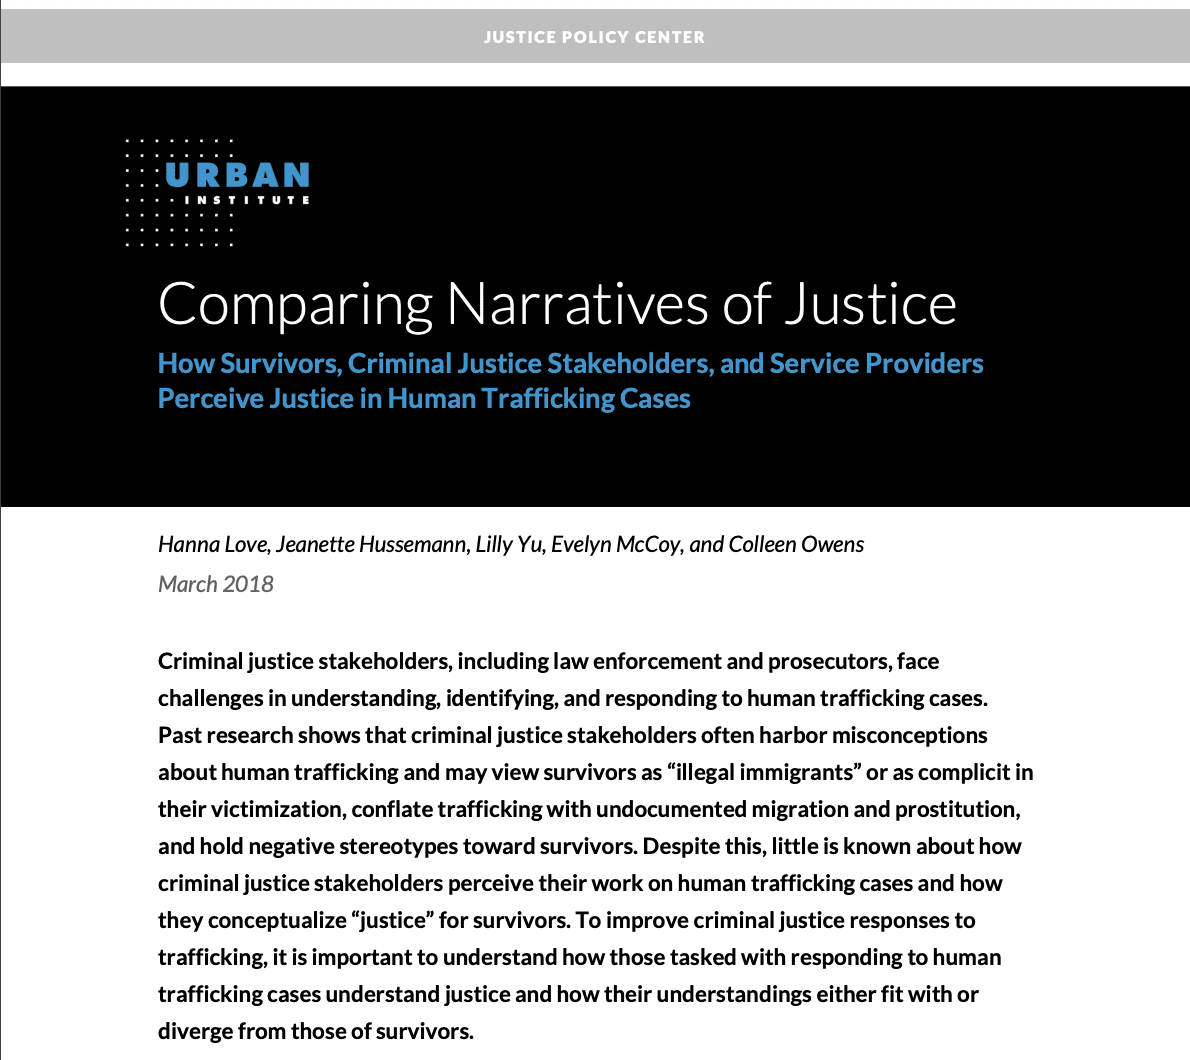 Comparing Narratives of Justice: How Survivors, Criminal Justice Stakeholders, and Service Providers Perceive Justice in Human Trafficking Cases